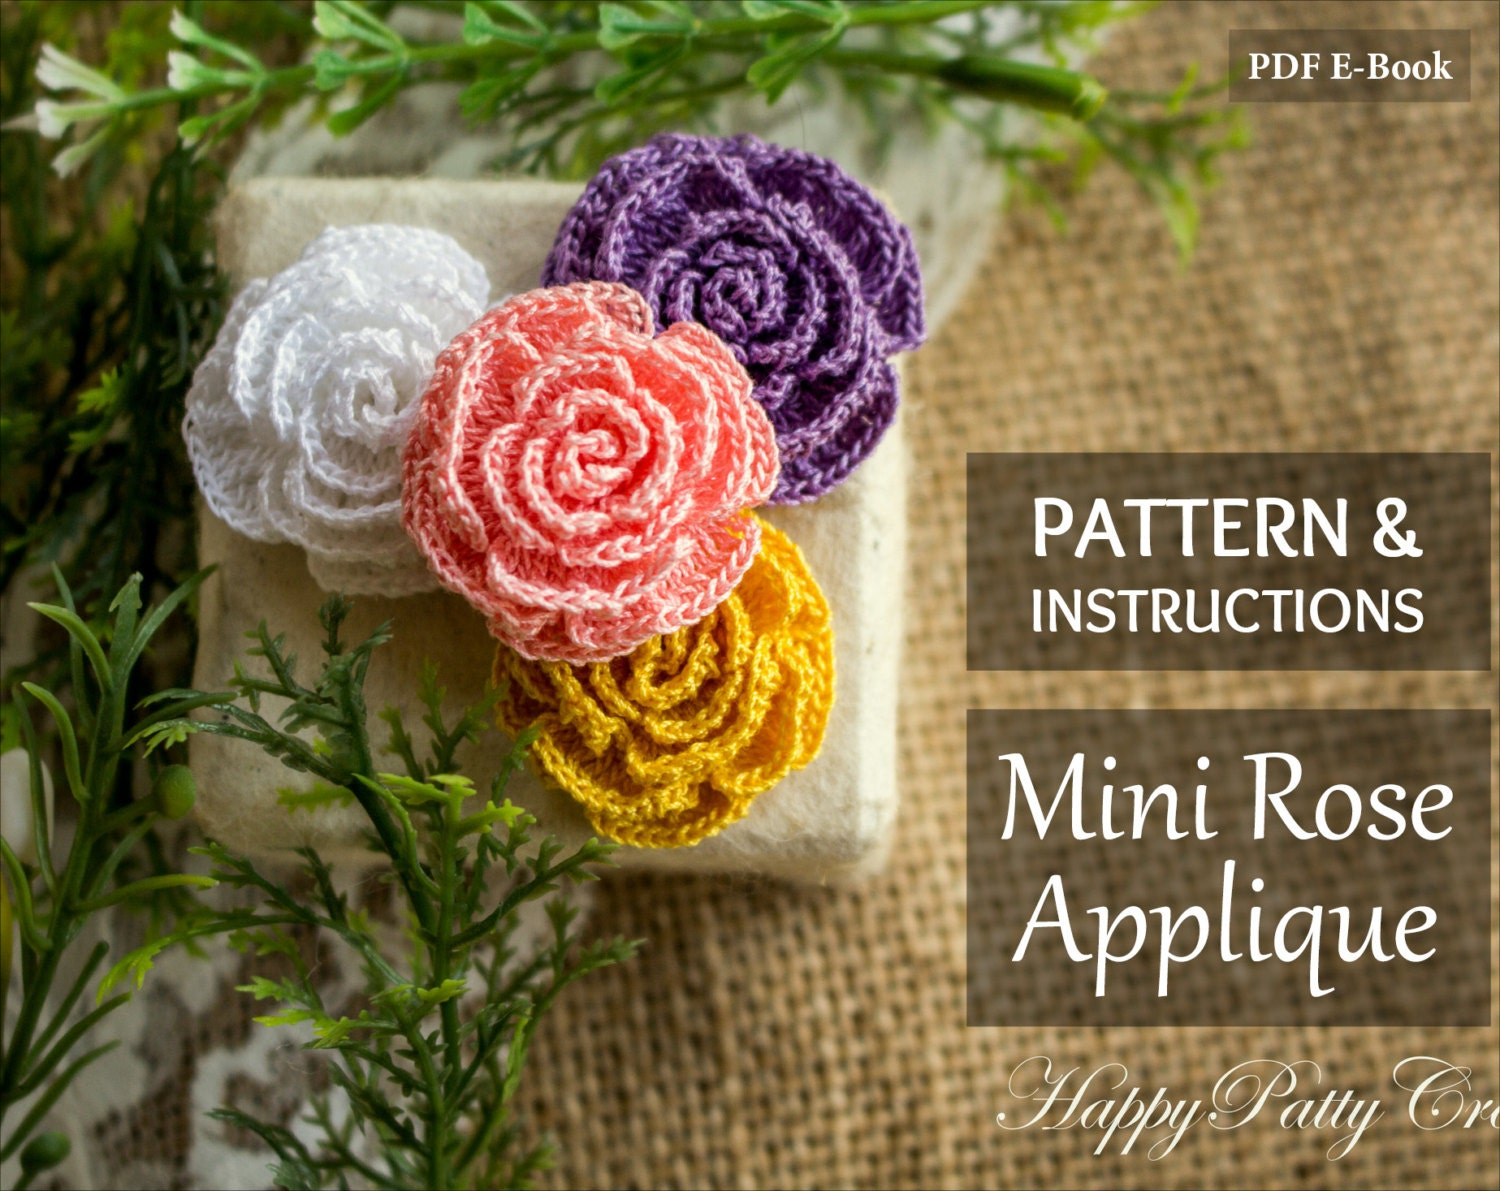 Mini Crochet Rose Pattern and Instructions Mini Rose